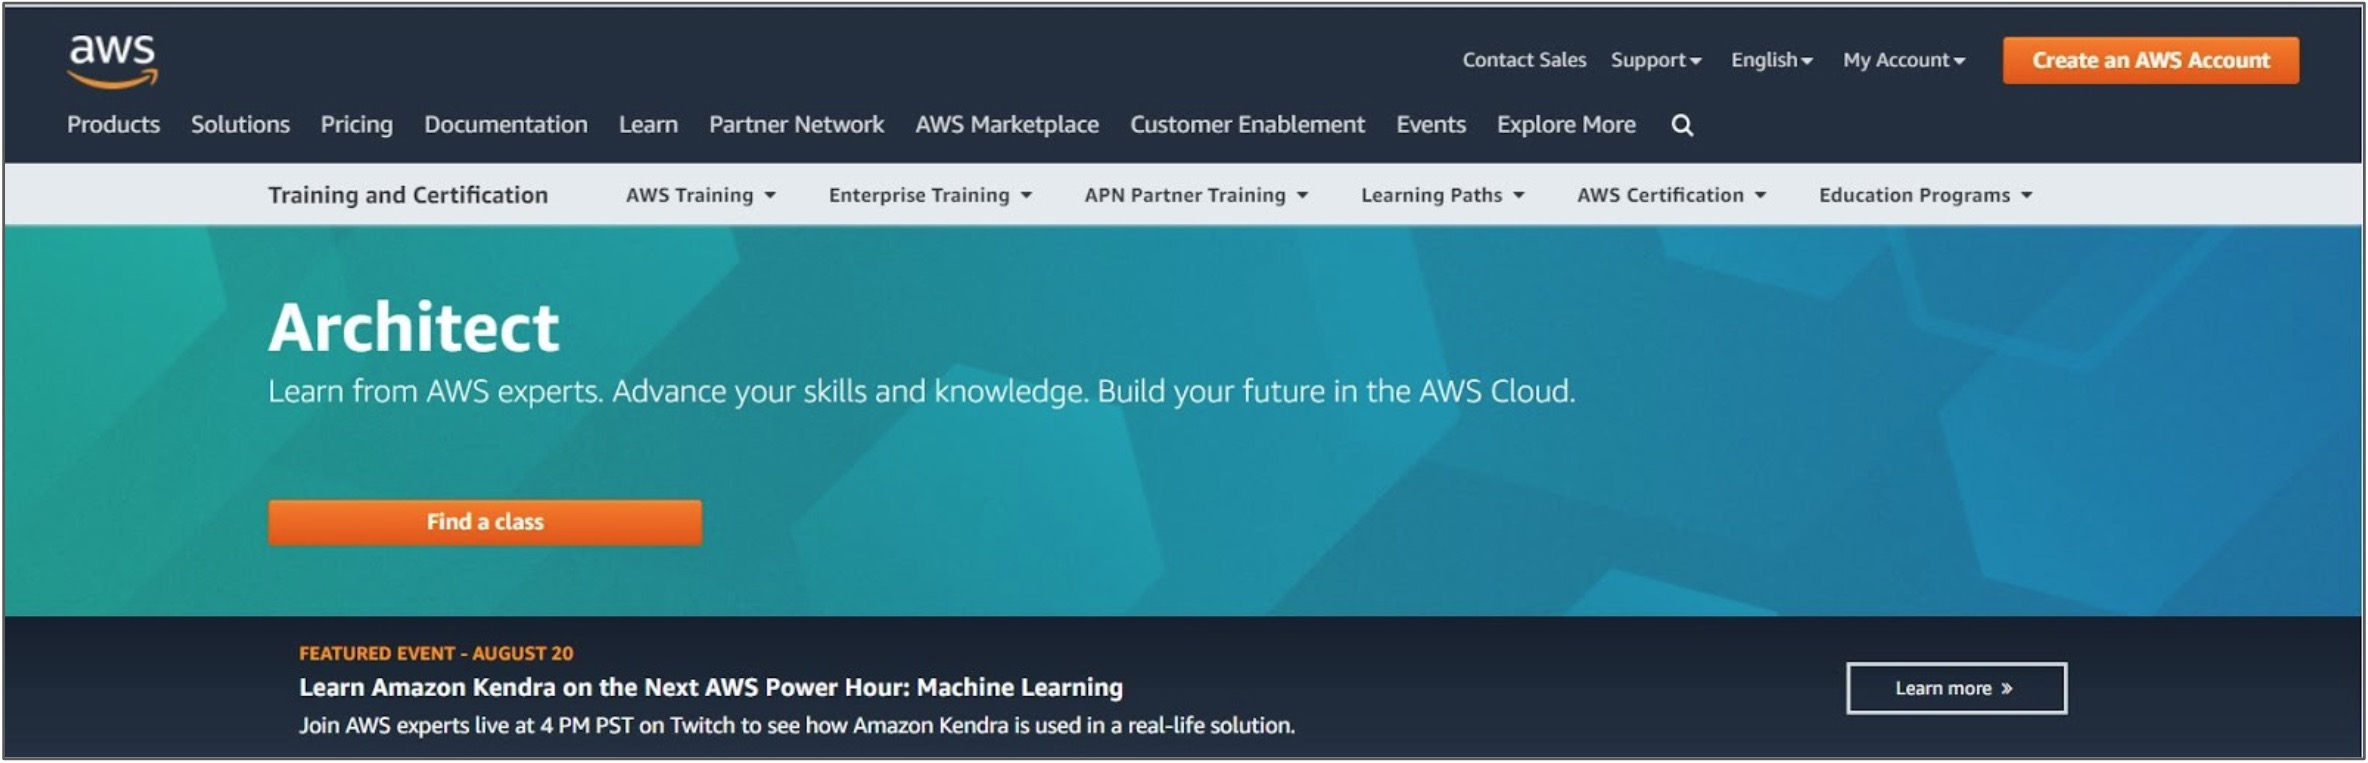 Screenshot of an Amazon Web Services Architect course